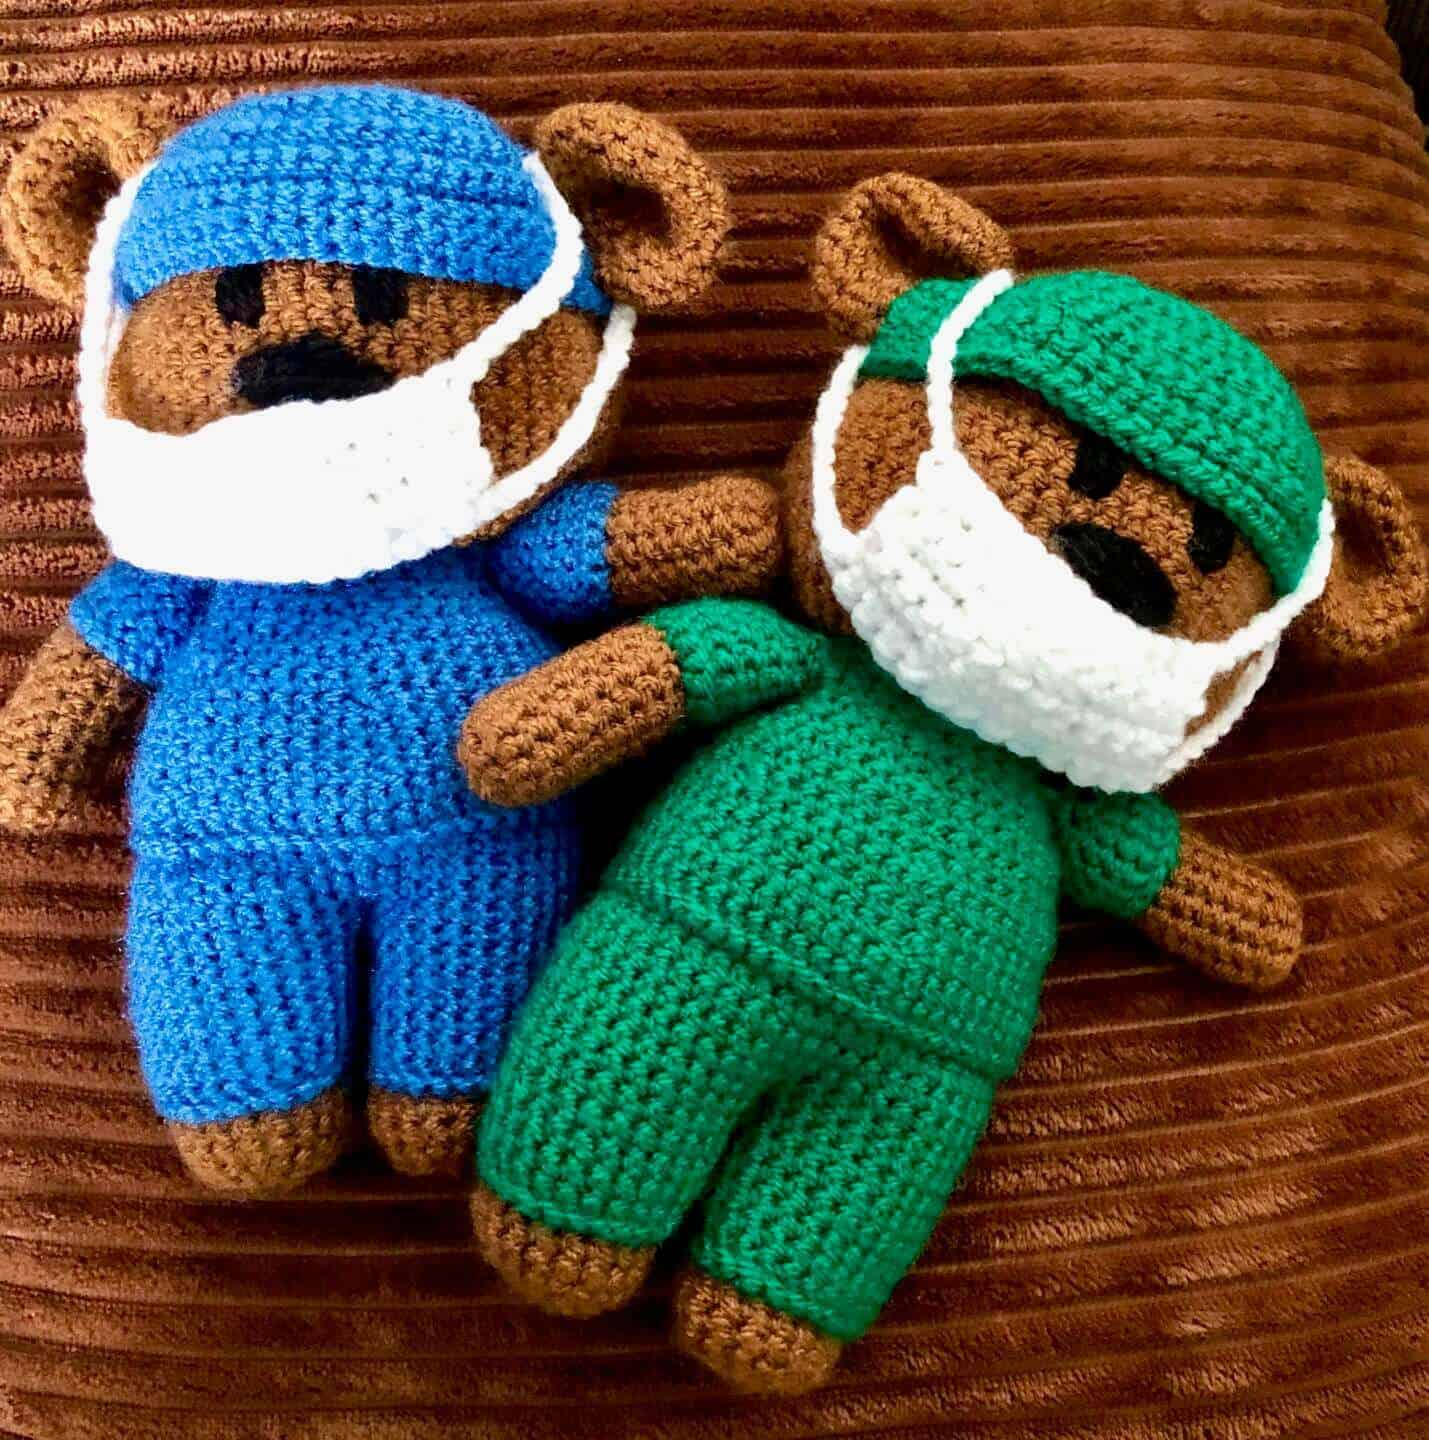 Teddybär | Crochet teddy bear pattern, Crochet teddy bear, Teddy ... | 1440x1429